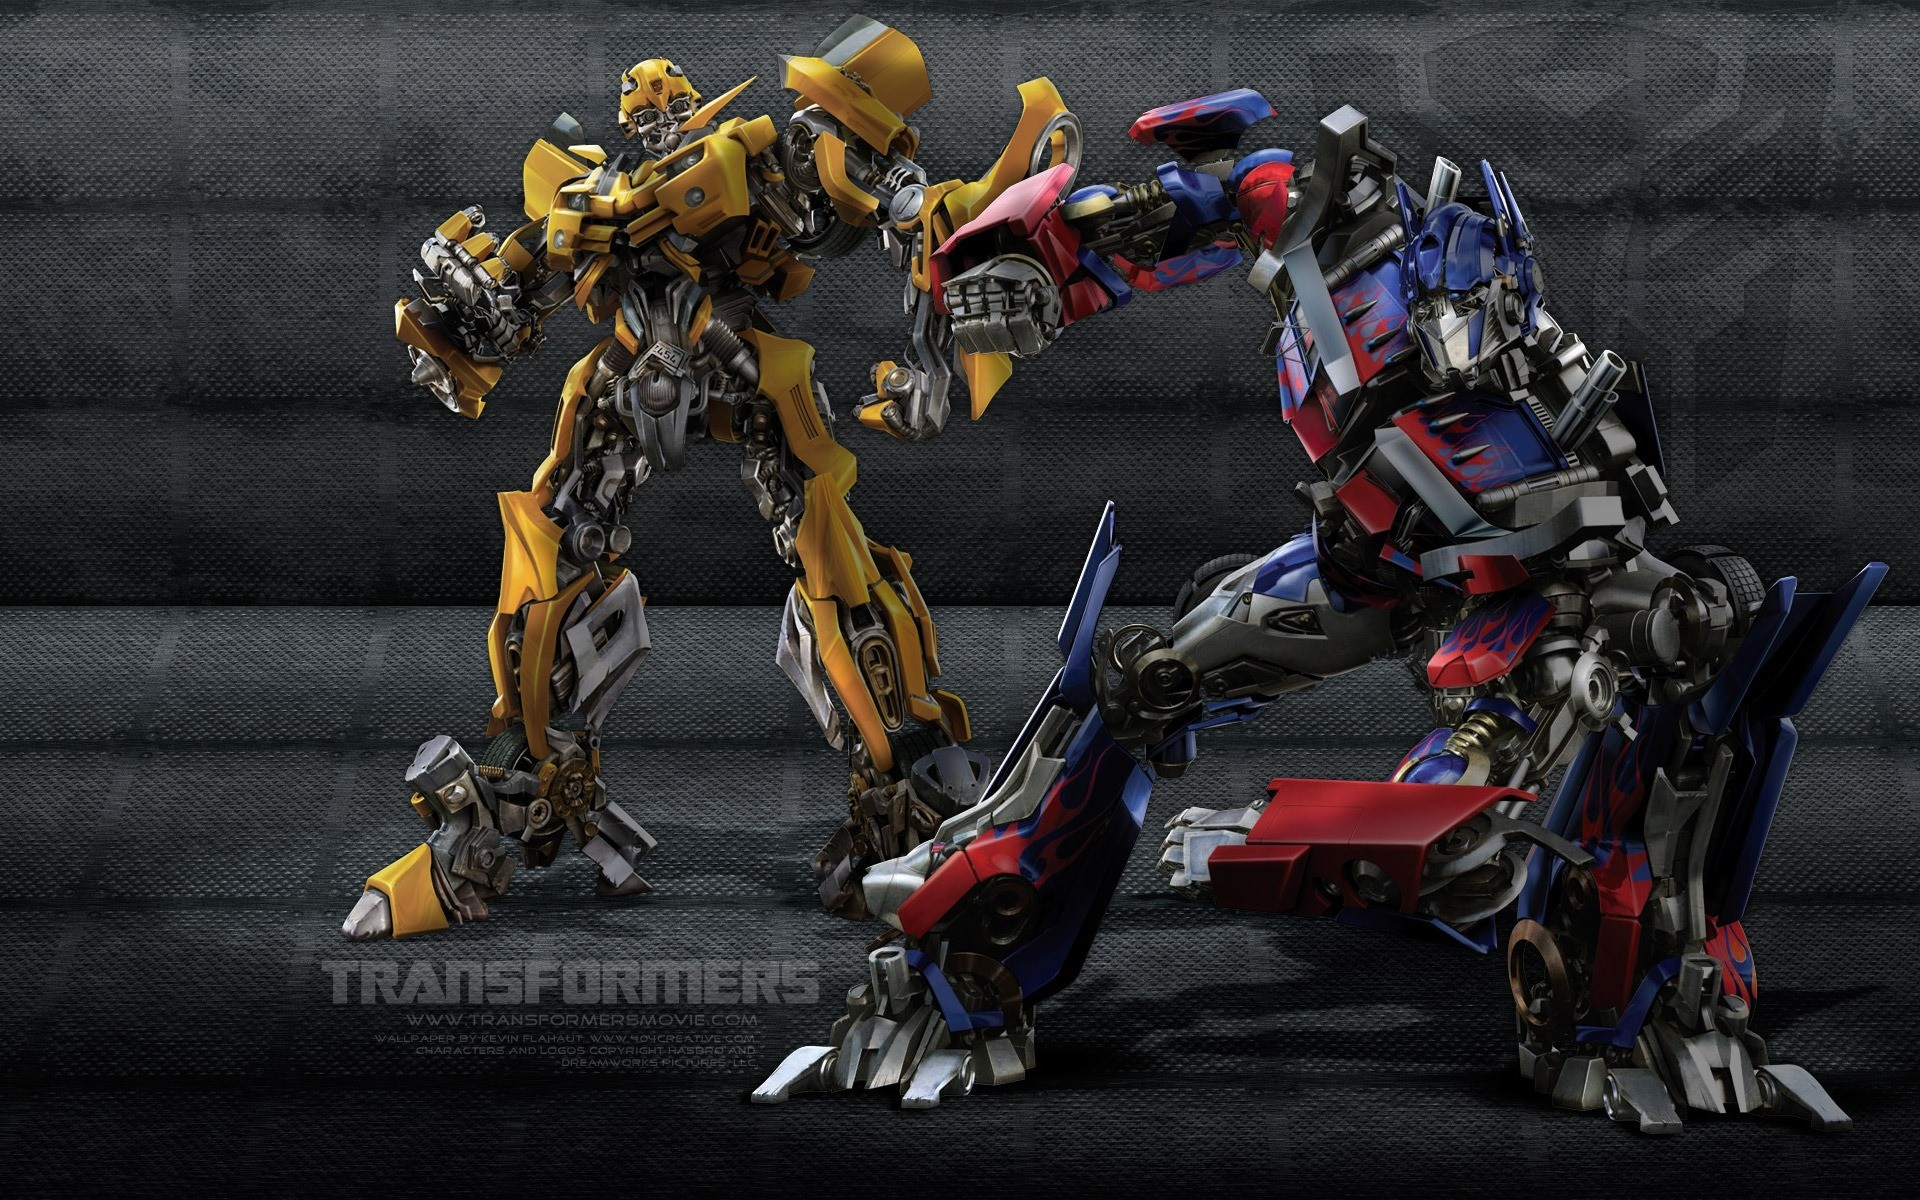 Res: 1920x1200, Bumblebee Optimus Wallpaper Transformers Movies Wallpapers